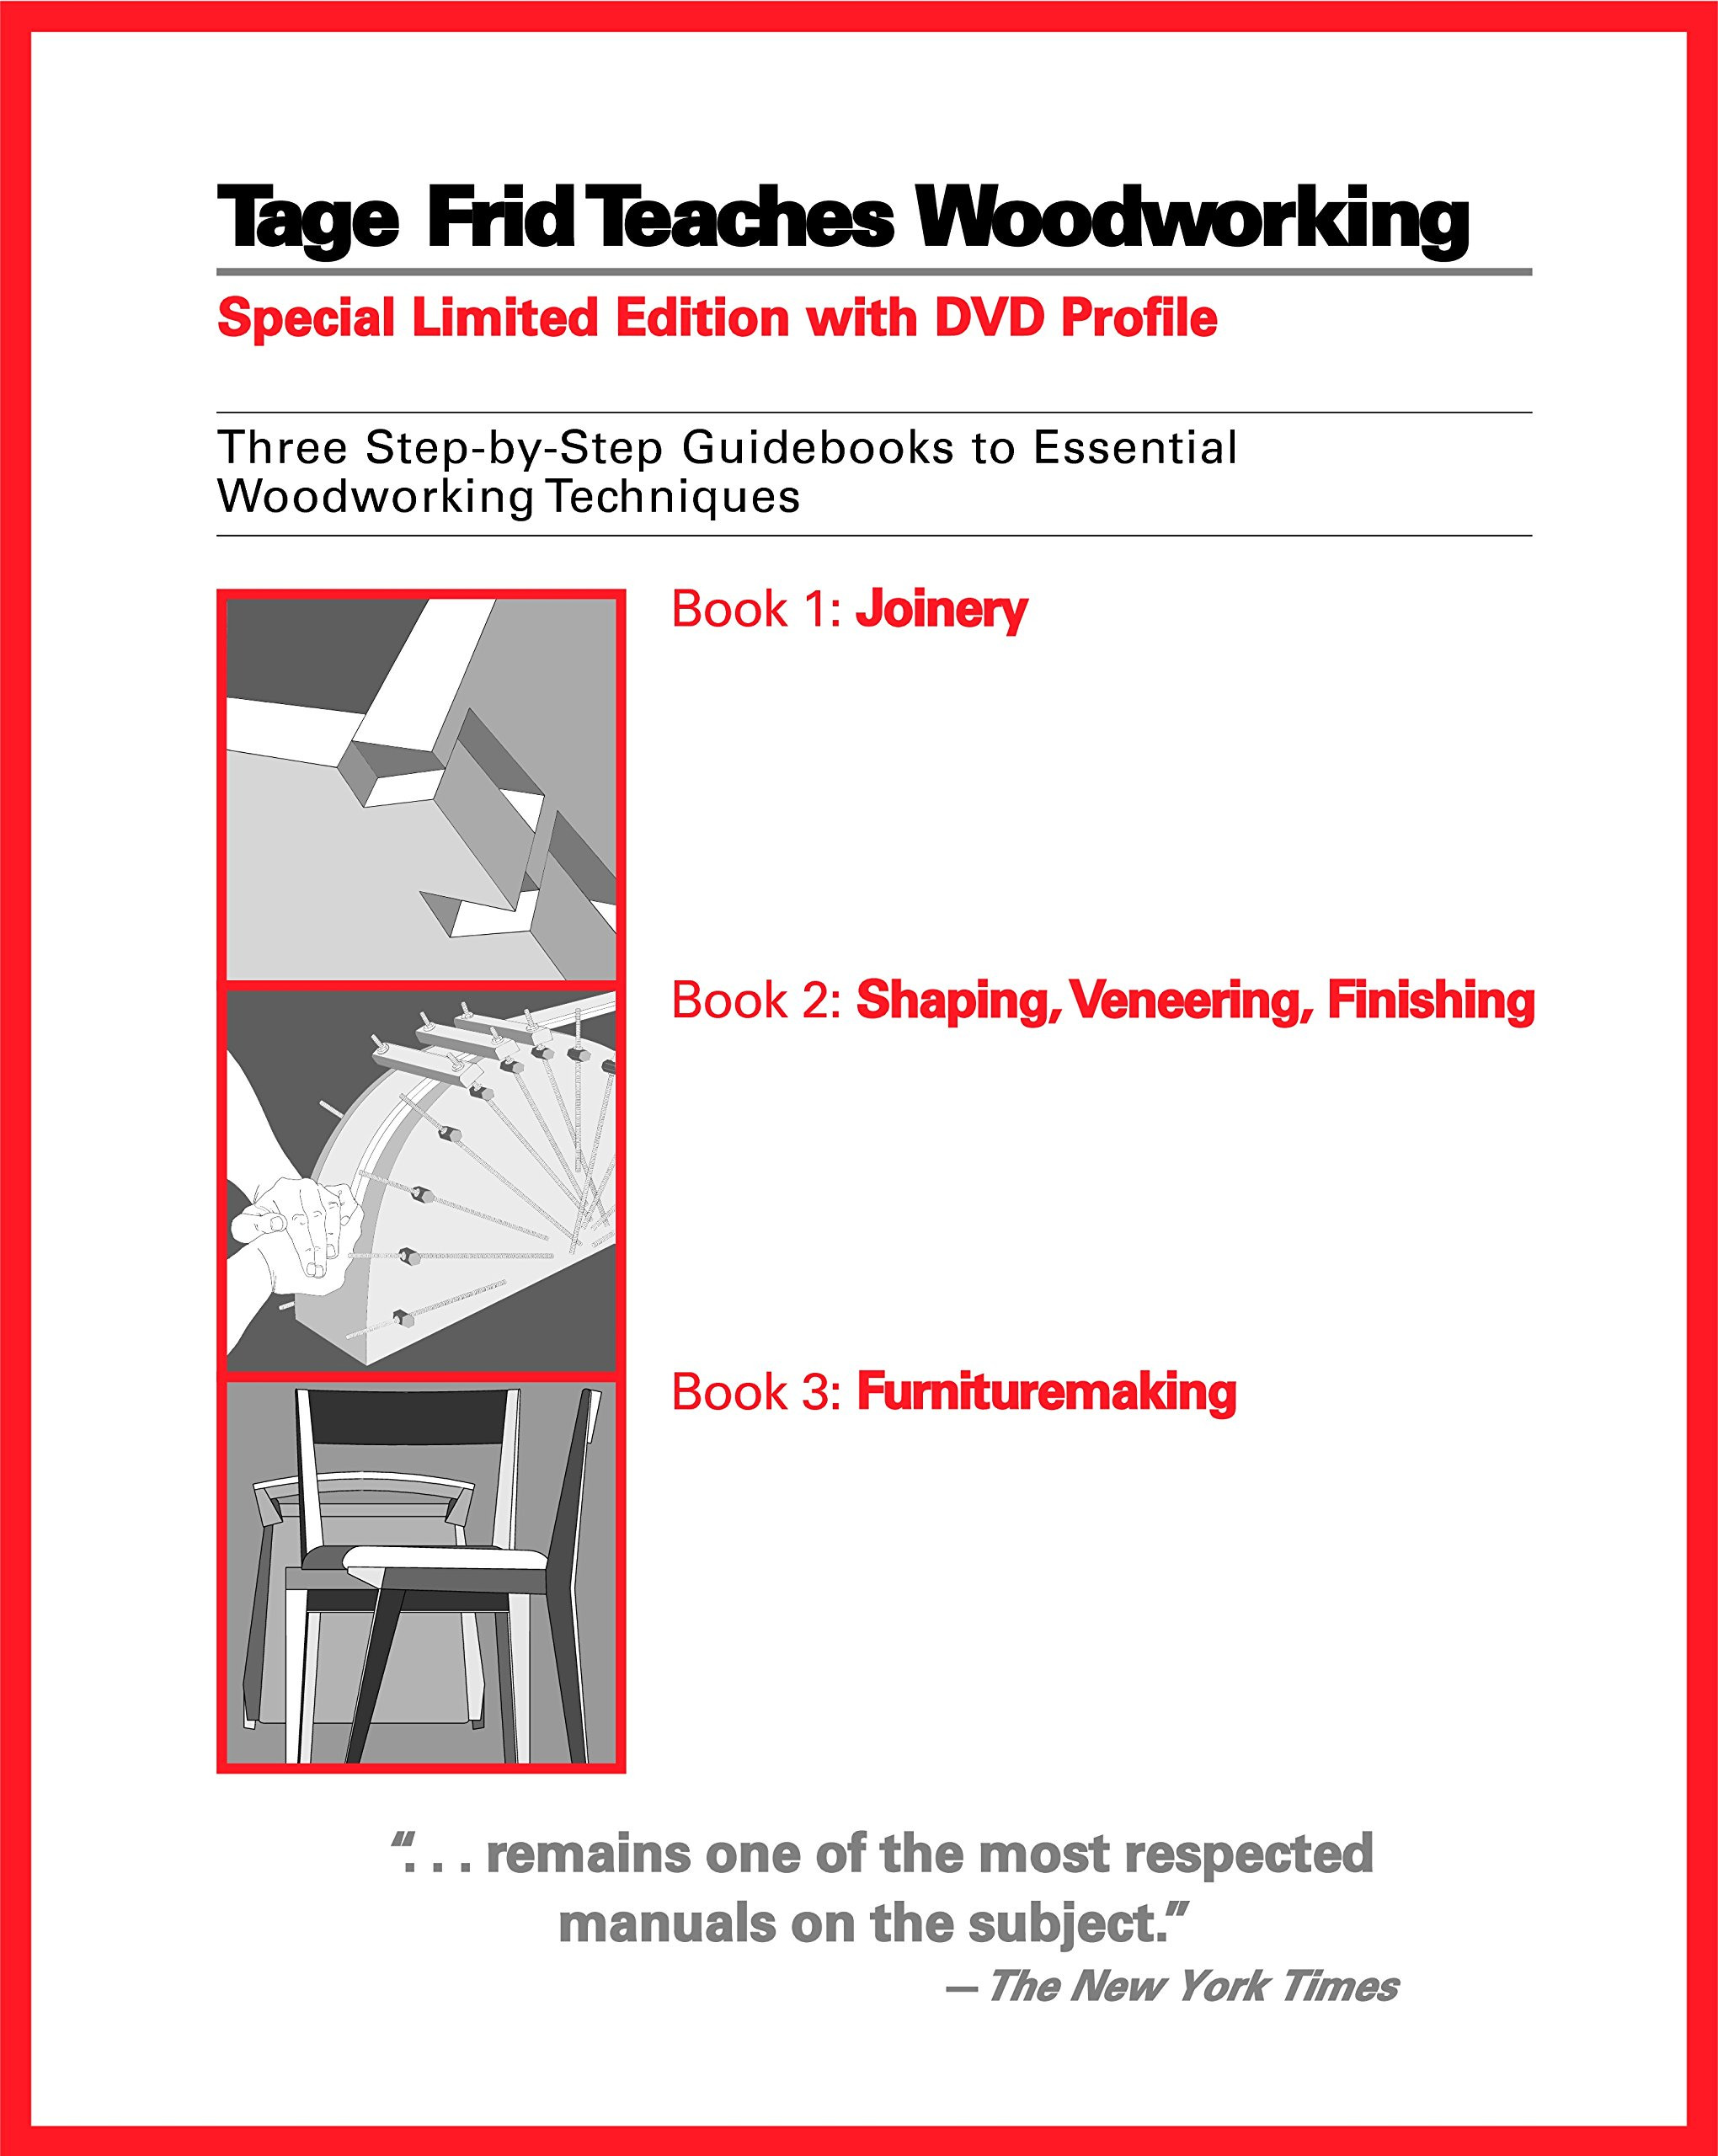 Tage Frid Teaches Woodworking: Three Step-by-Step Guidebooks to Essential Woodworking Techniques by Brand: Taunton Press (Image #1)